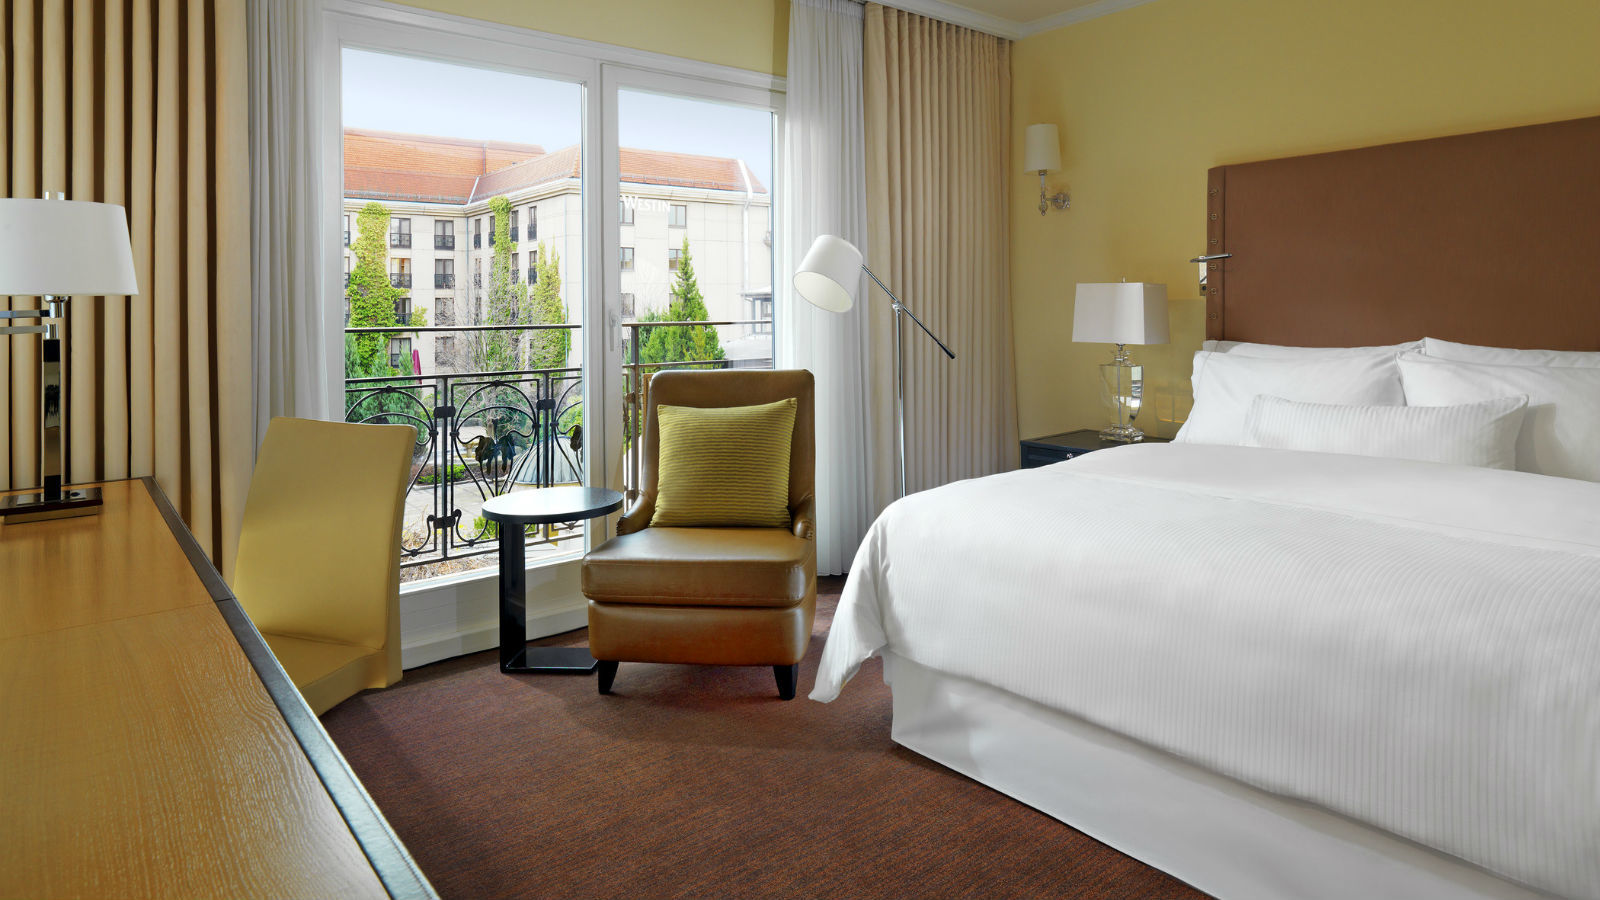 Garden Superior Zimmer im The Westin Grand Hotel in Berlin